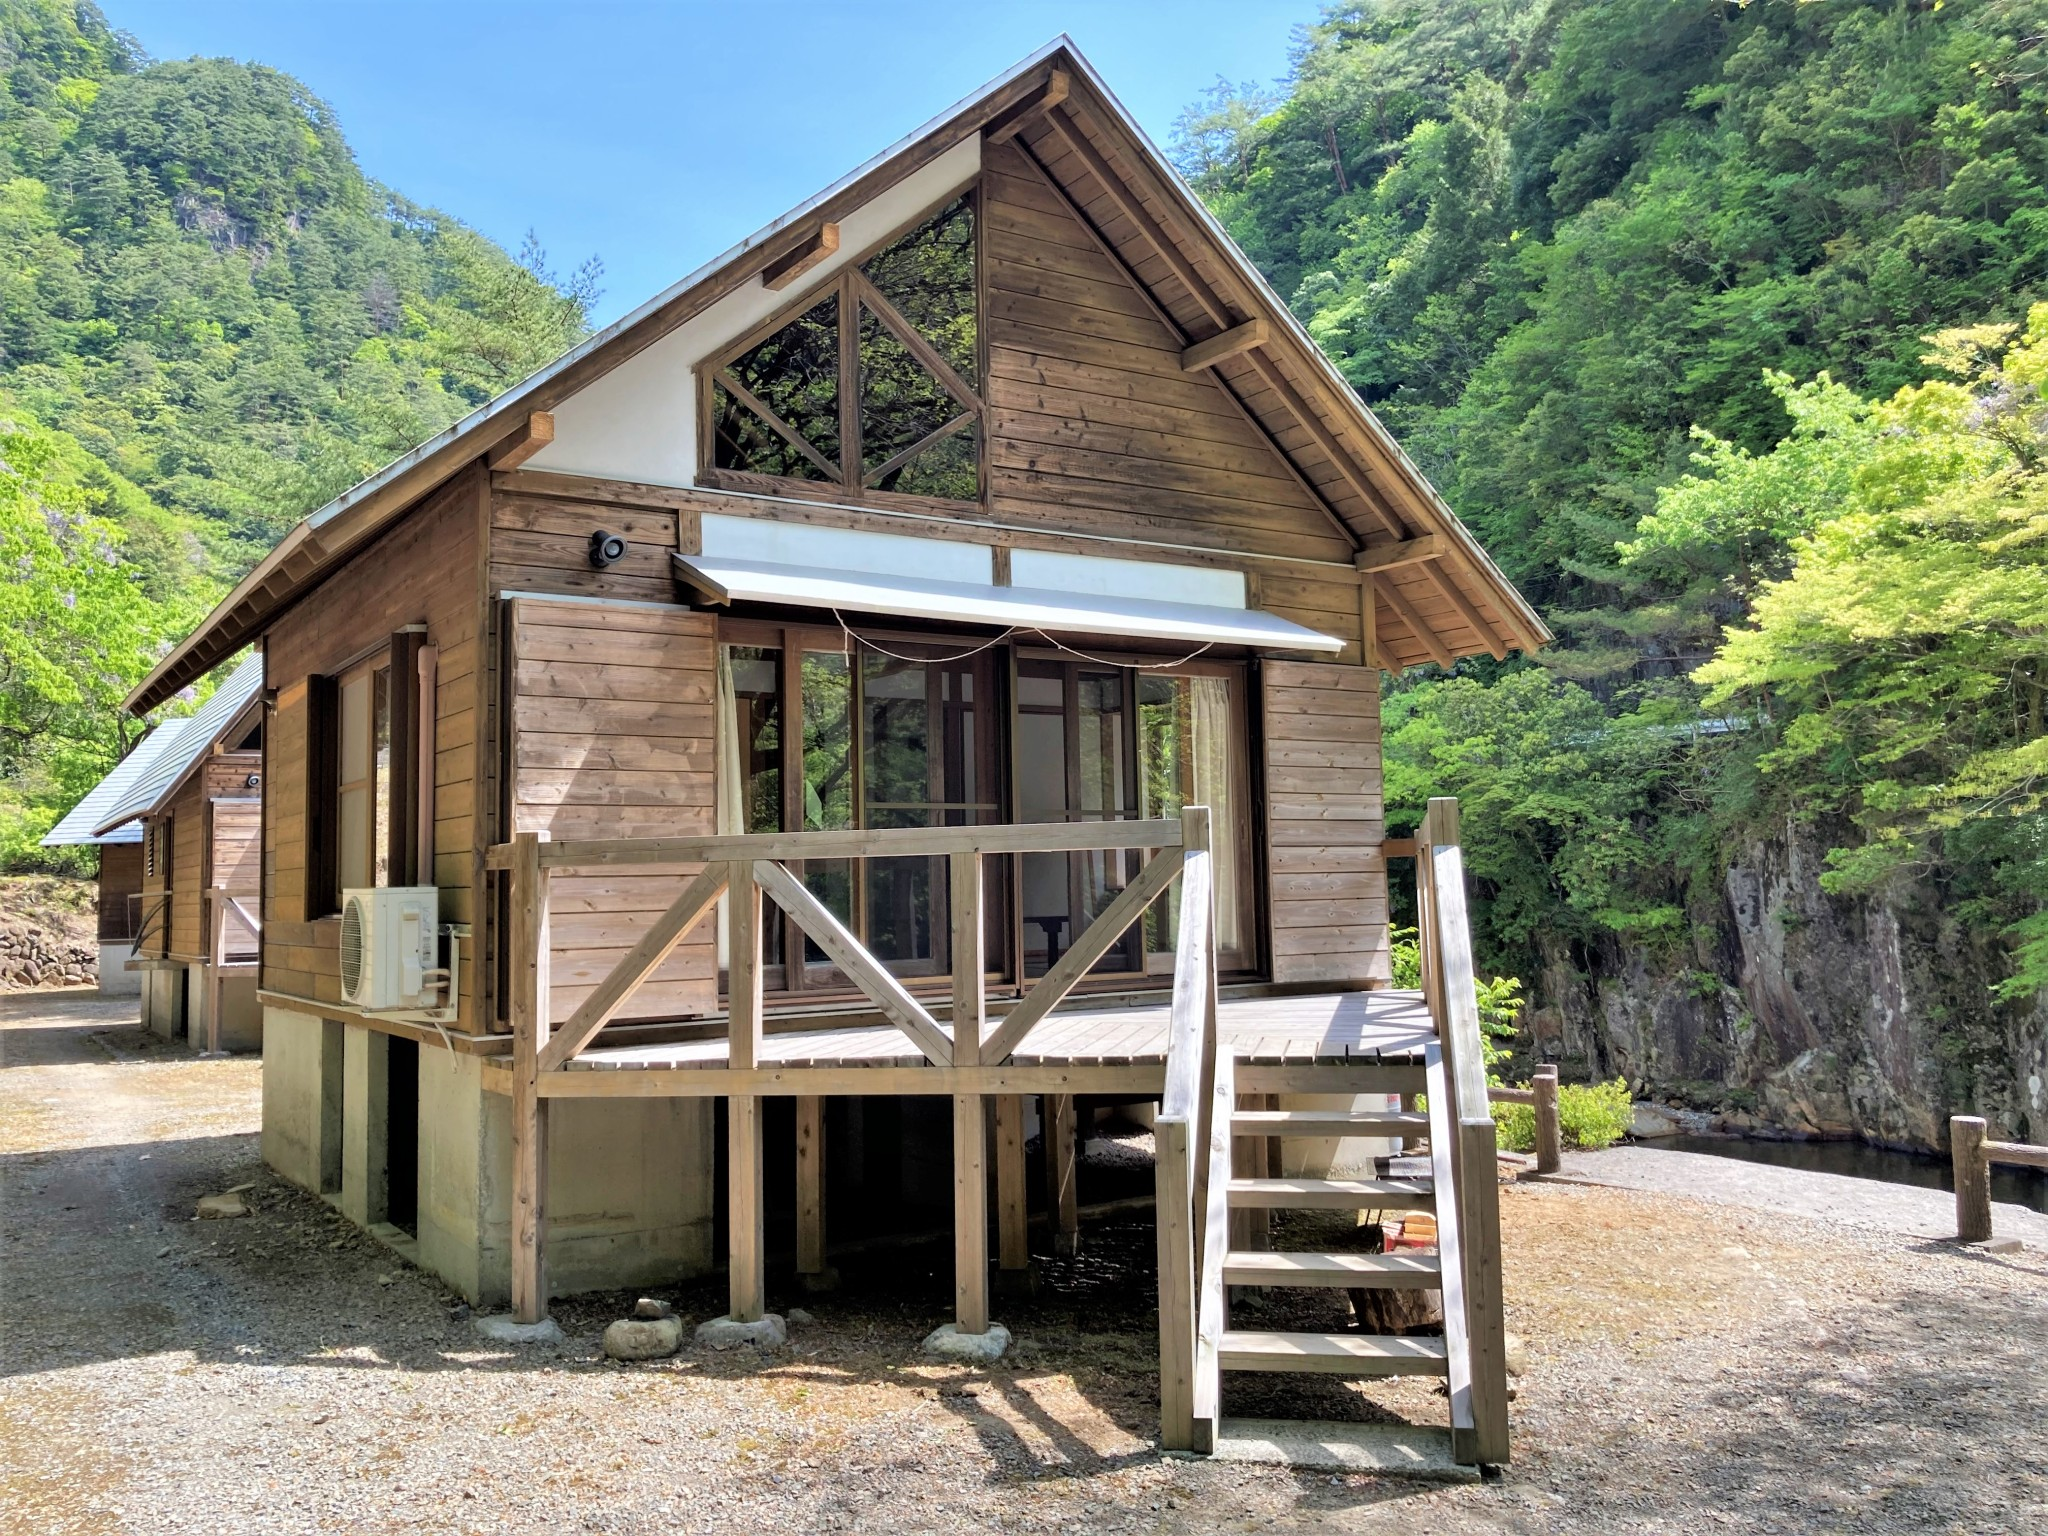 Wooden rental cabins in the Mitate Valley, Kyushu set against a blue sky and verdant woodland.